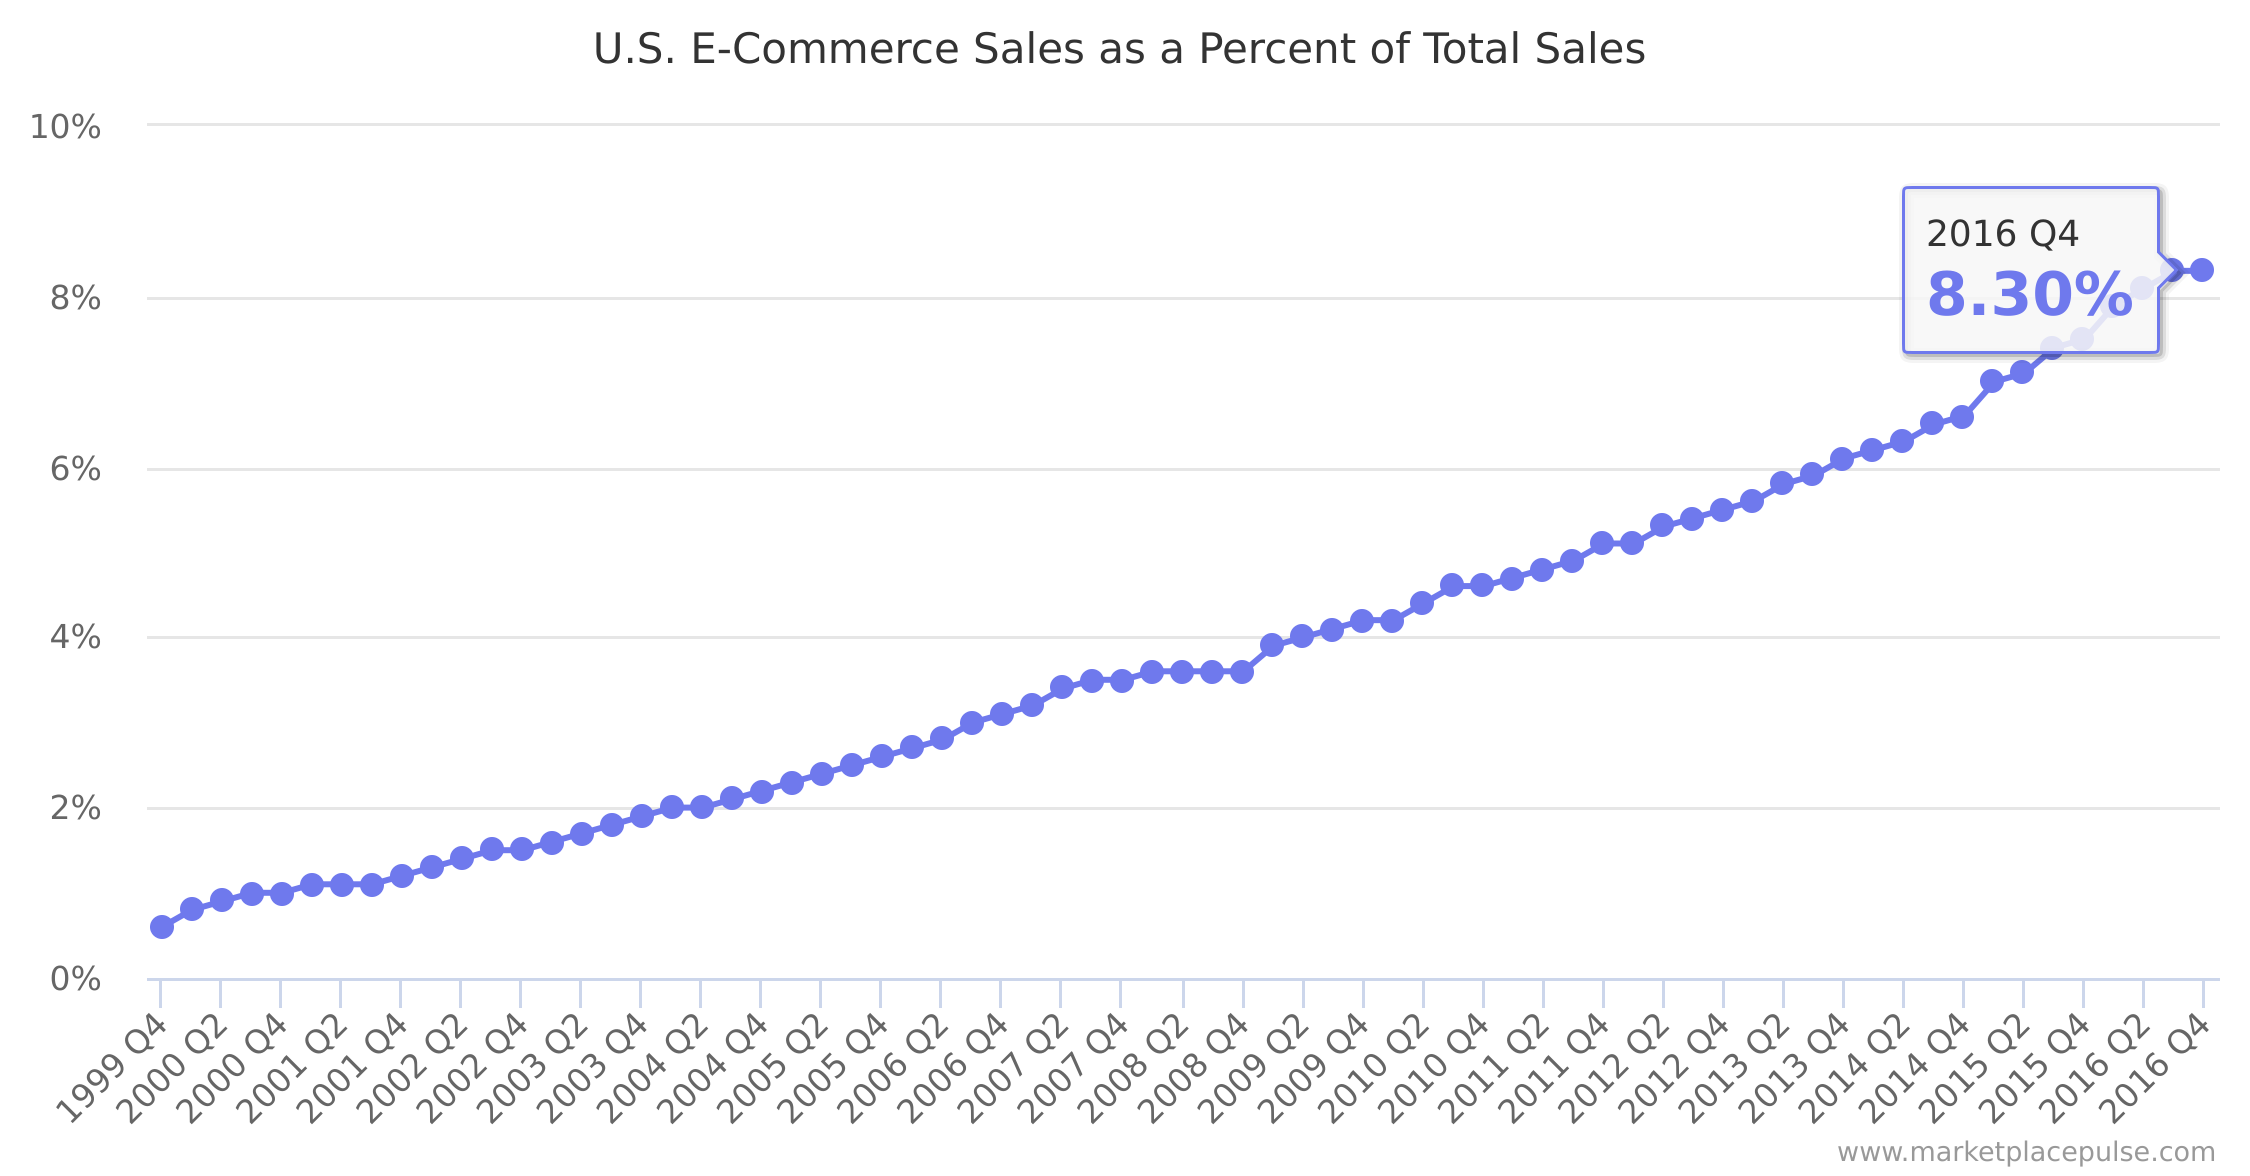 US E-commerce is now 8.3% up from 7.5% last year of total US retail volume